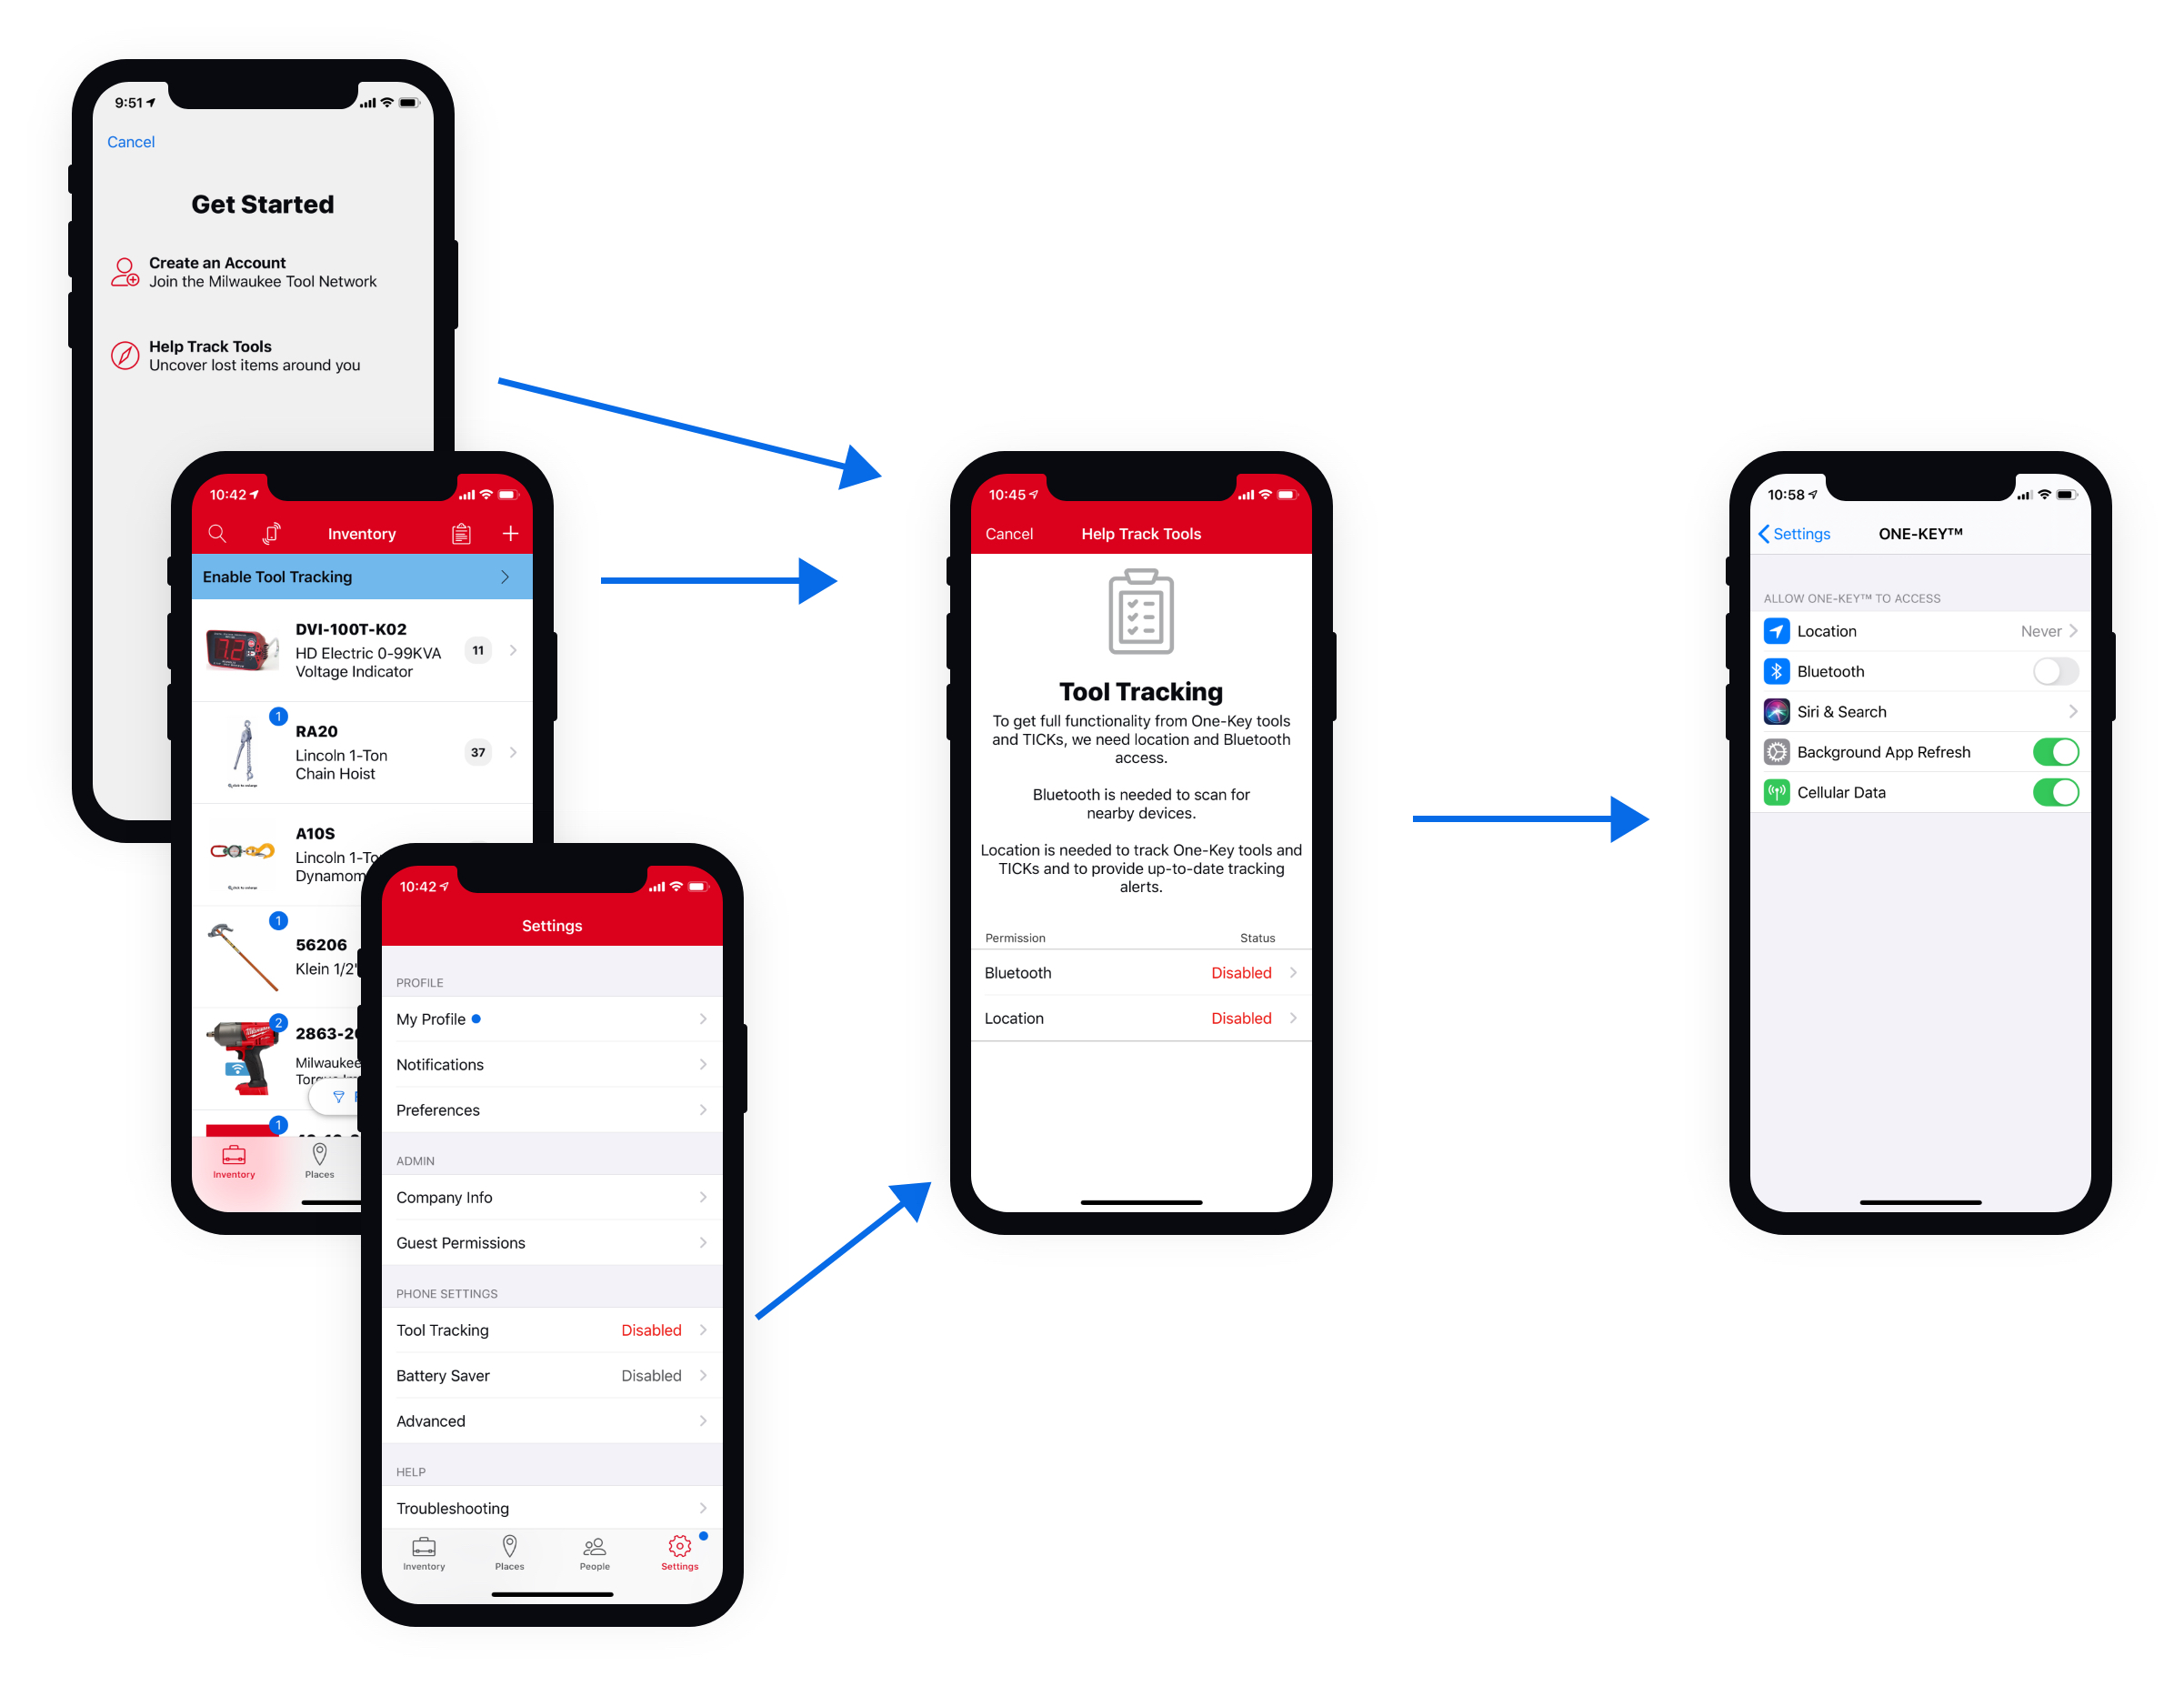 A diagram shows Bluetooth and location permissions needed to enable tool tracking in mobile app